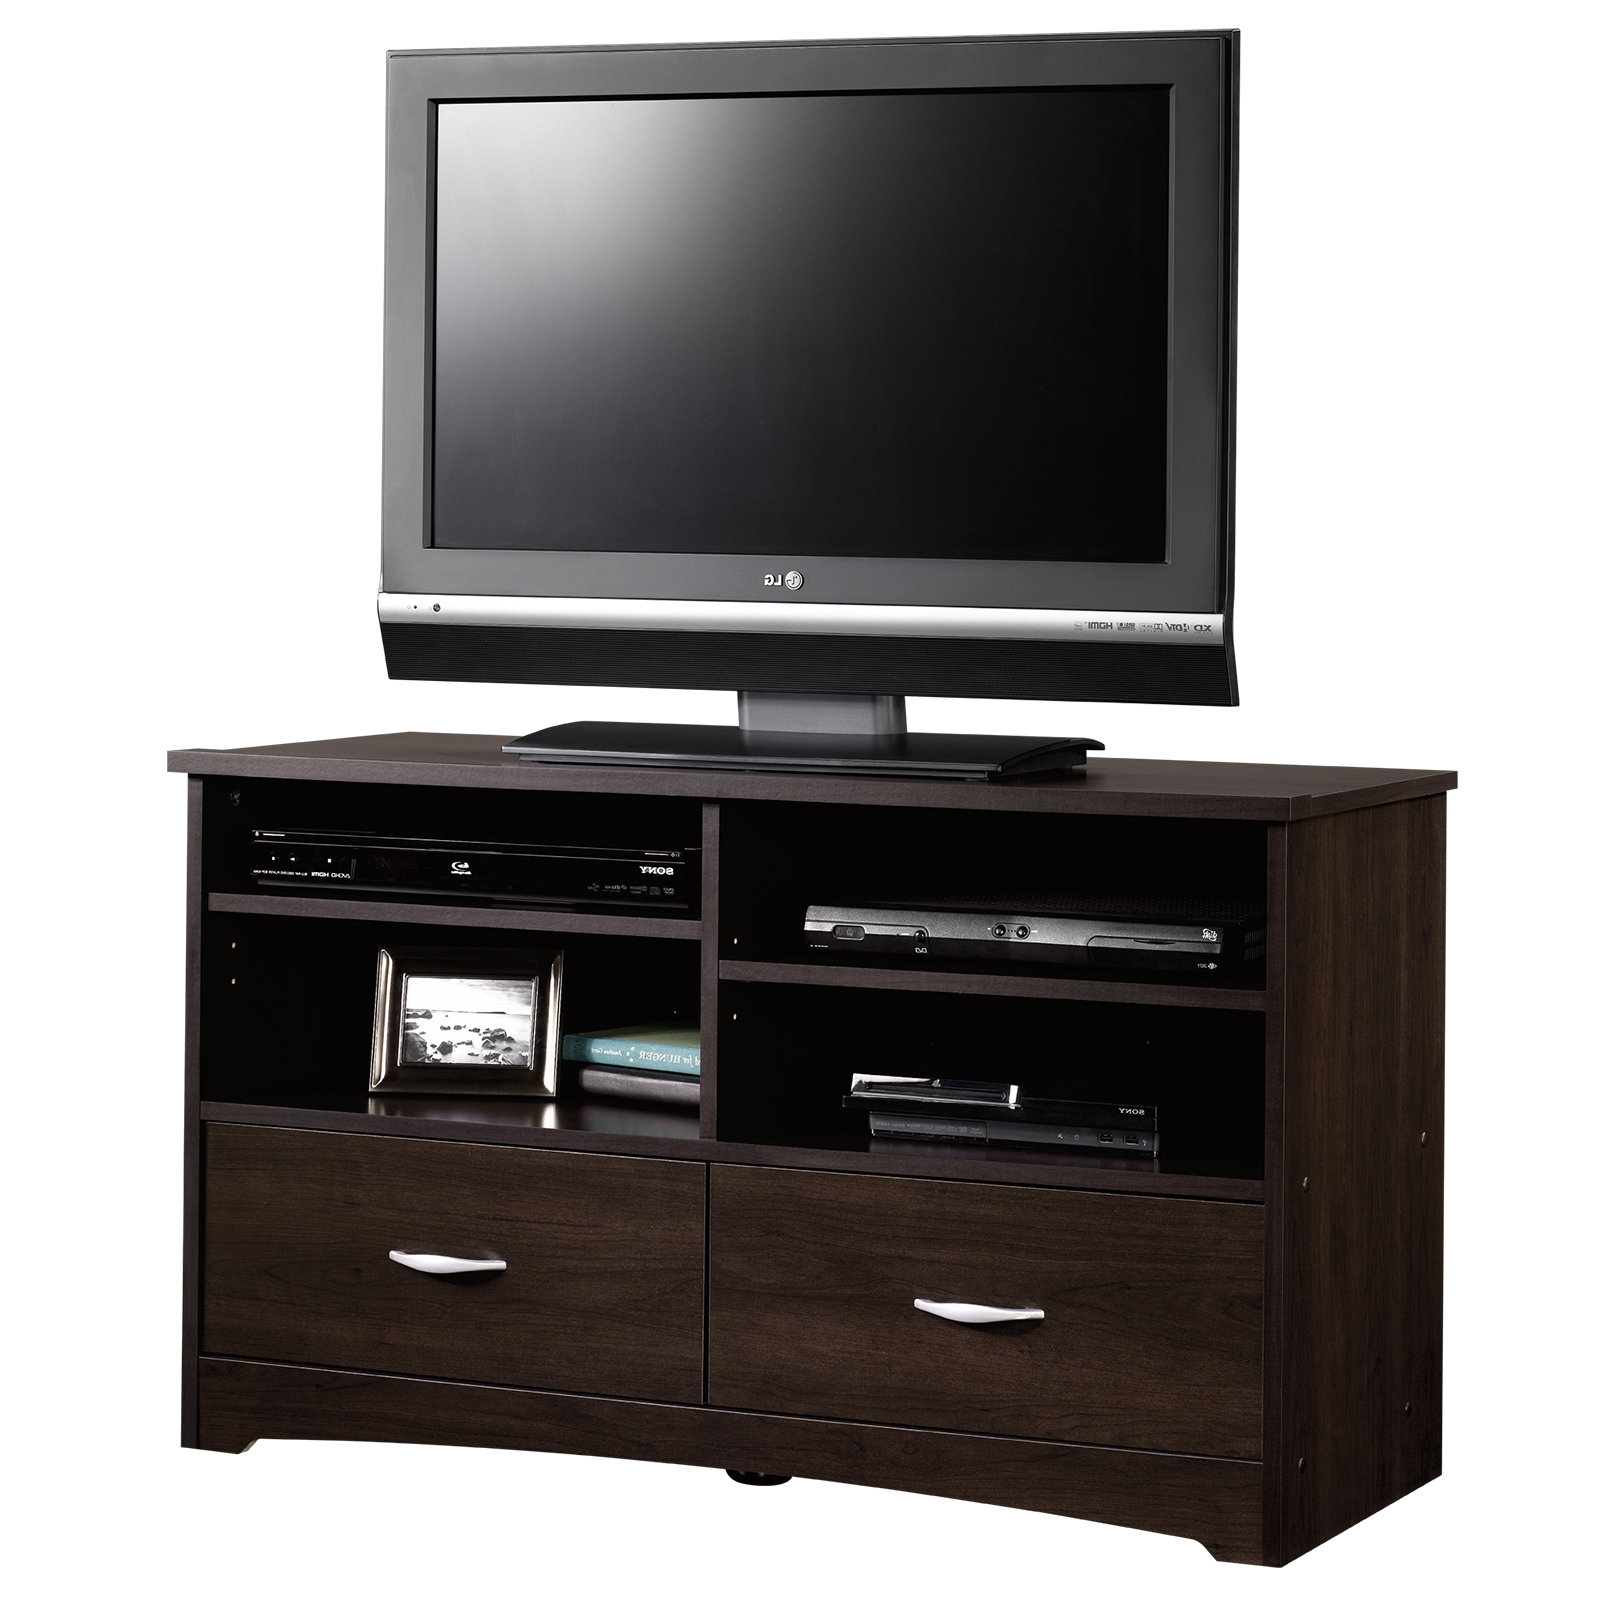 Beginnings | Tv Stand | 413045 | Sauder Intended For Tv Cabinets With Drawers (View 3 of 20)